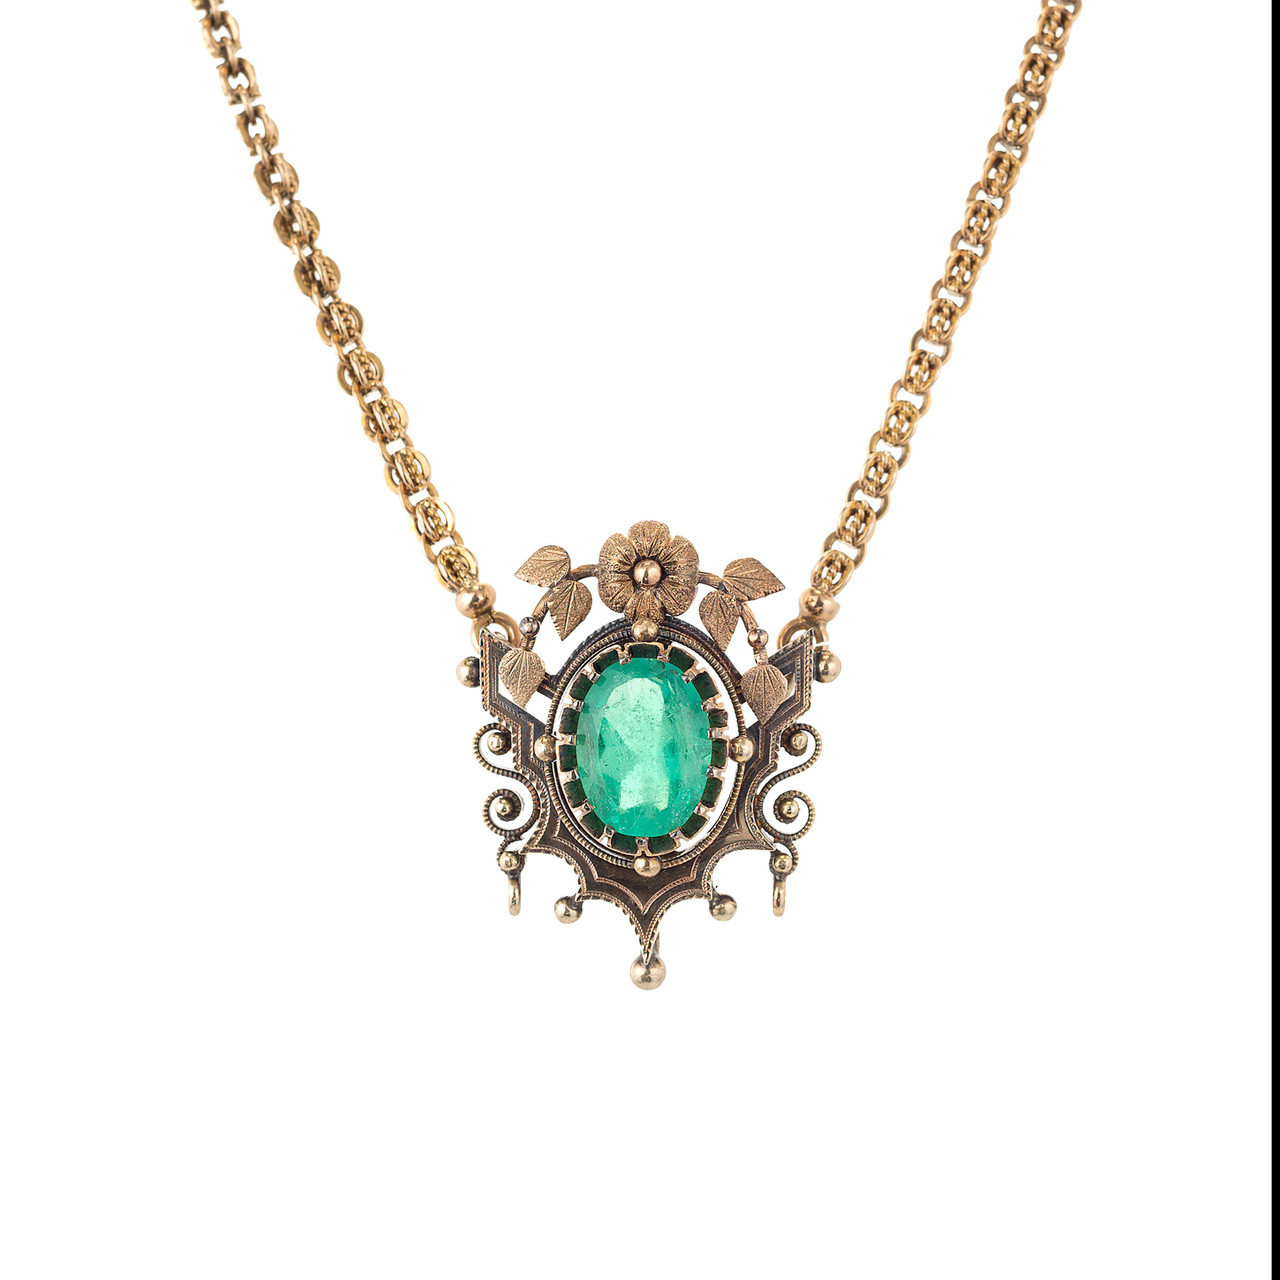 Gia Certified Victorian 4 50 Carat Emerald Yellow Gold Pendant Necklace Petersuchyjewelers